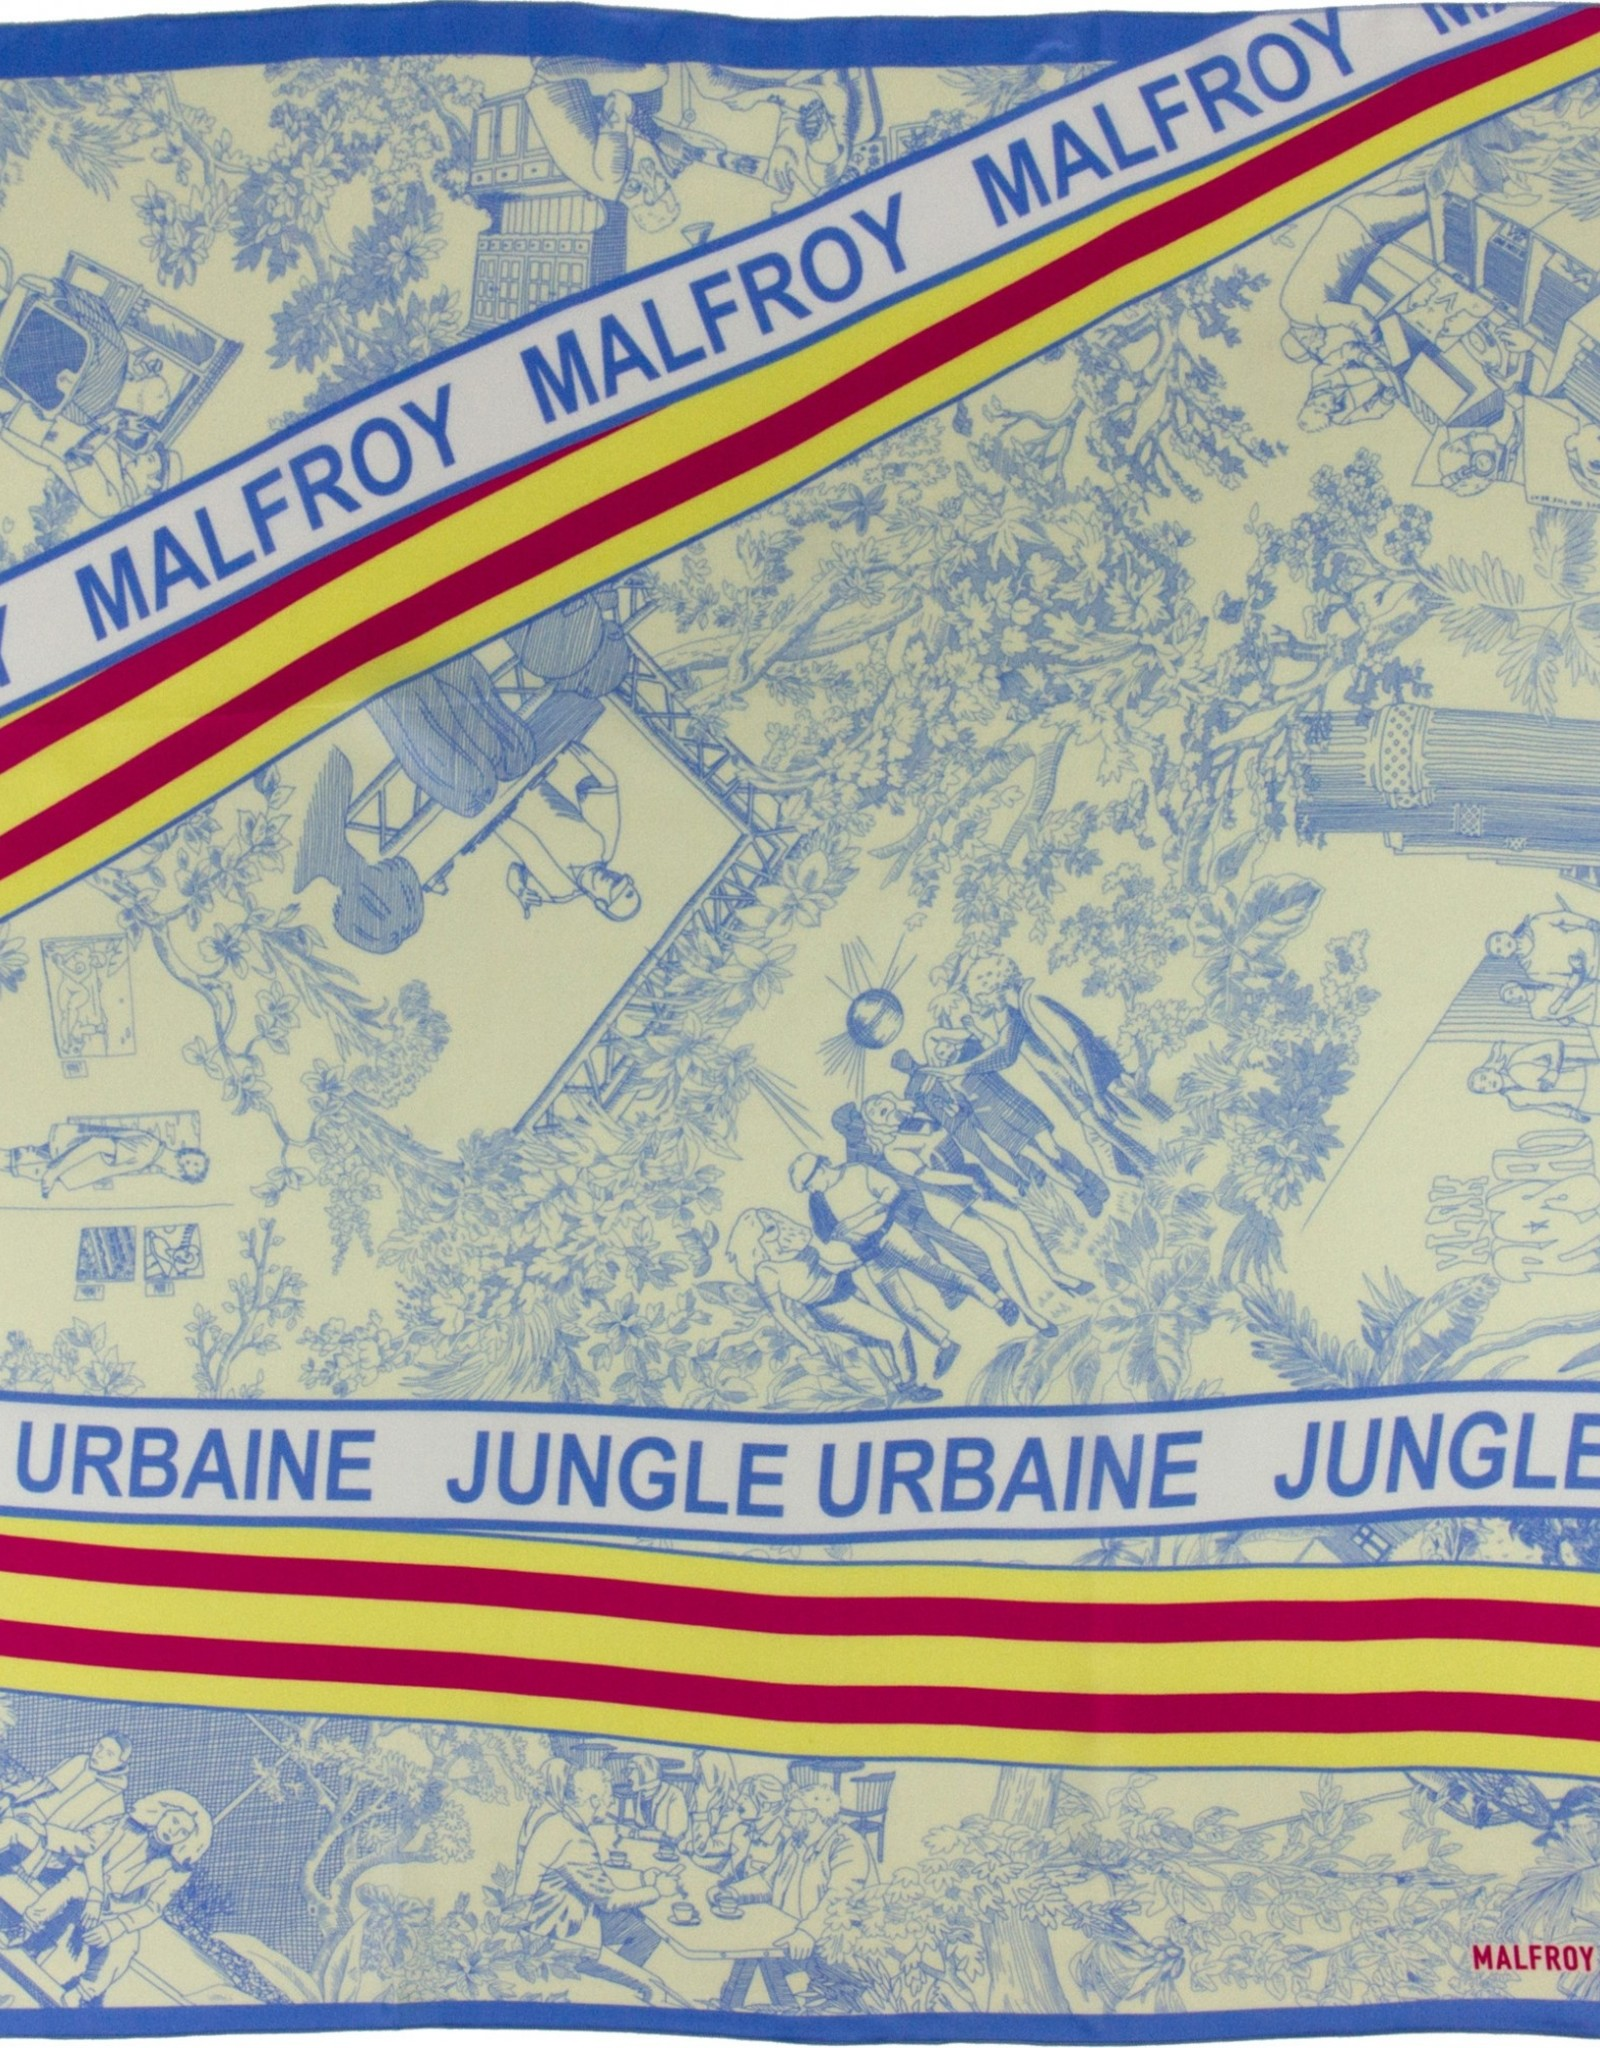 Malfroy Carre Junggle Urbaine